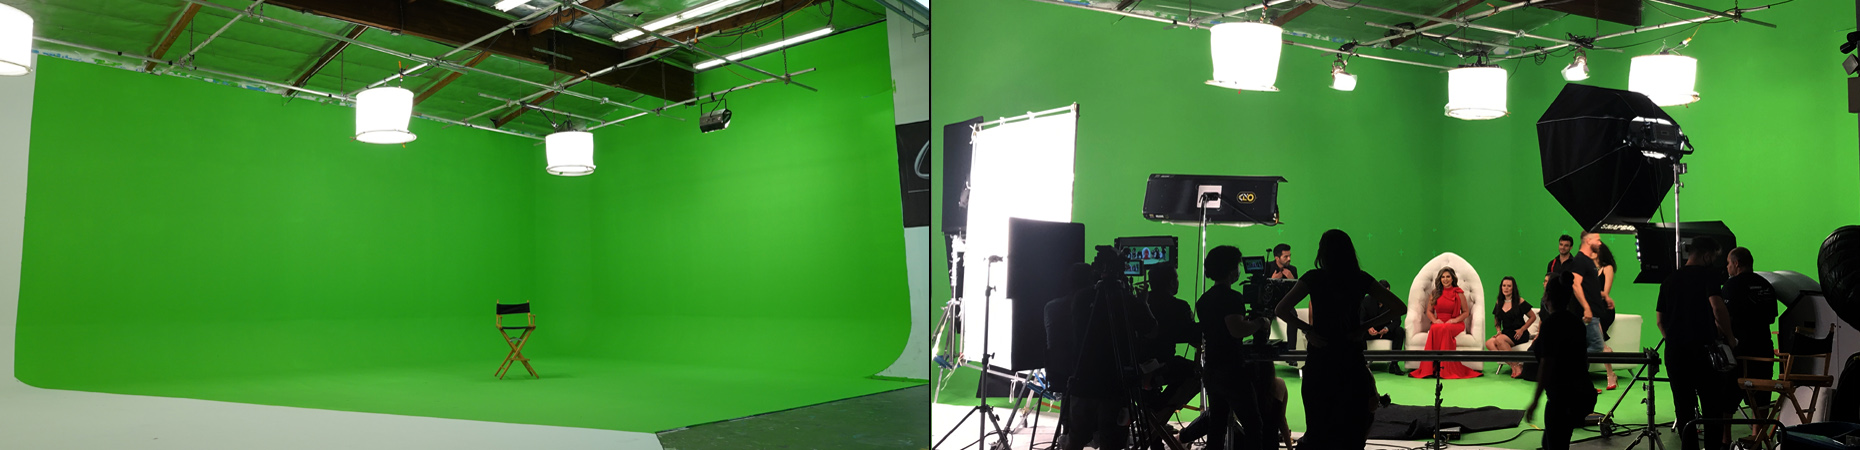 Large 55' Green Screen